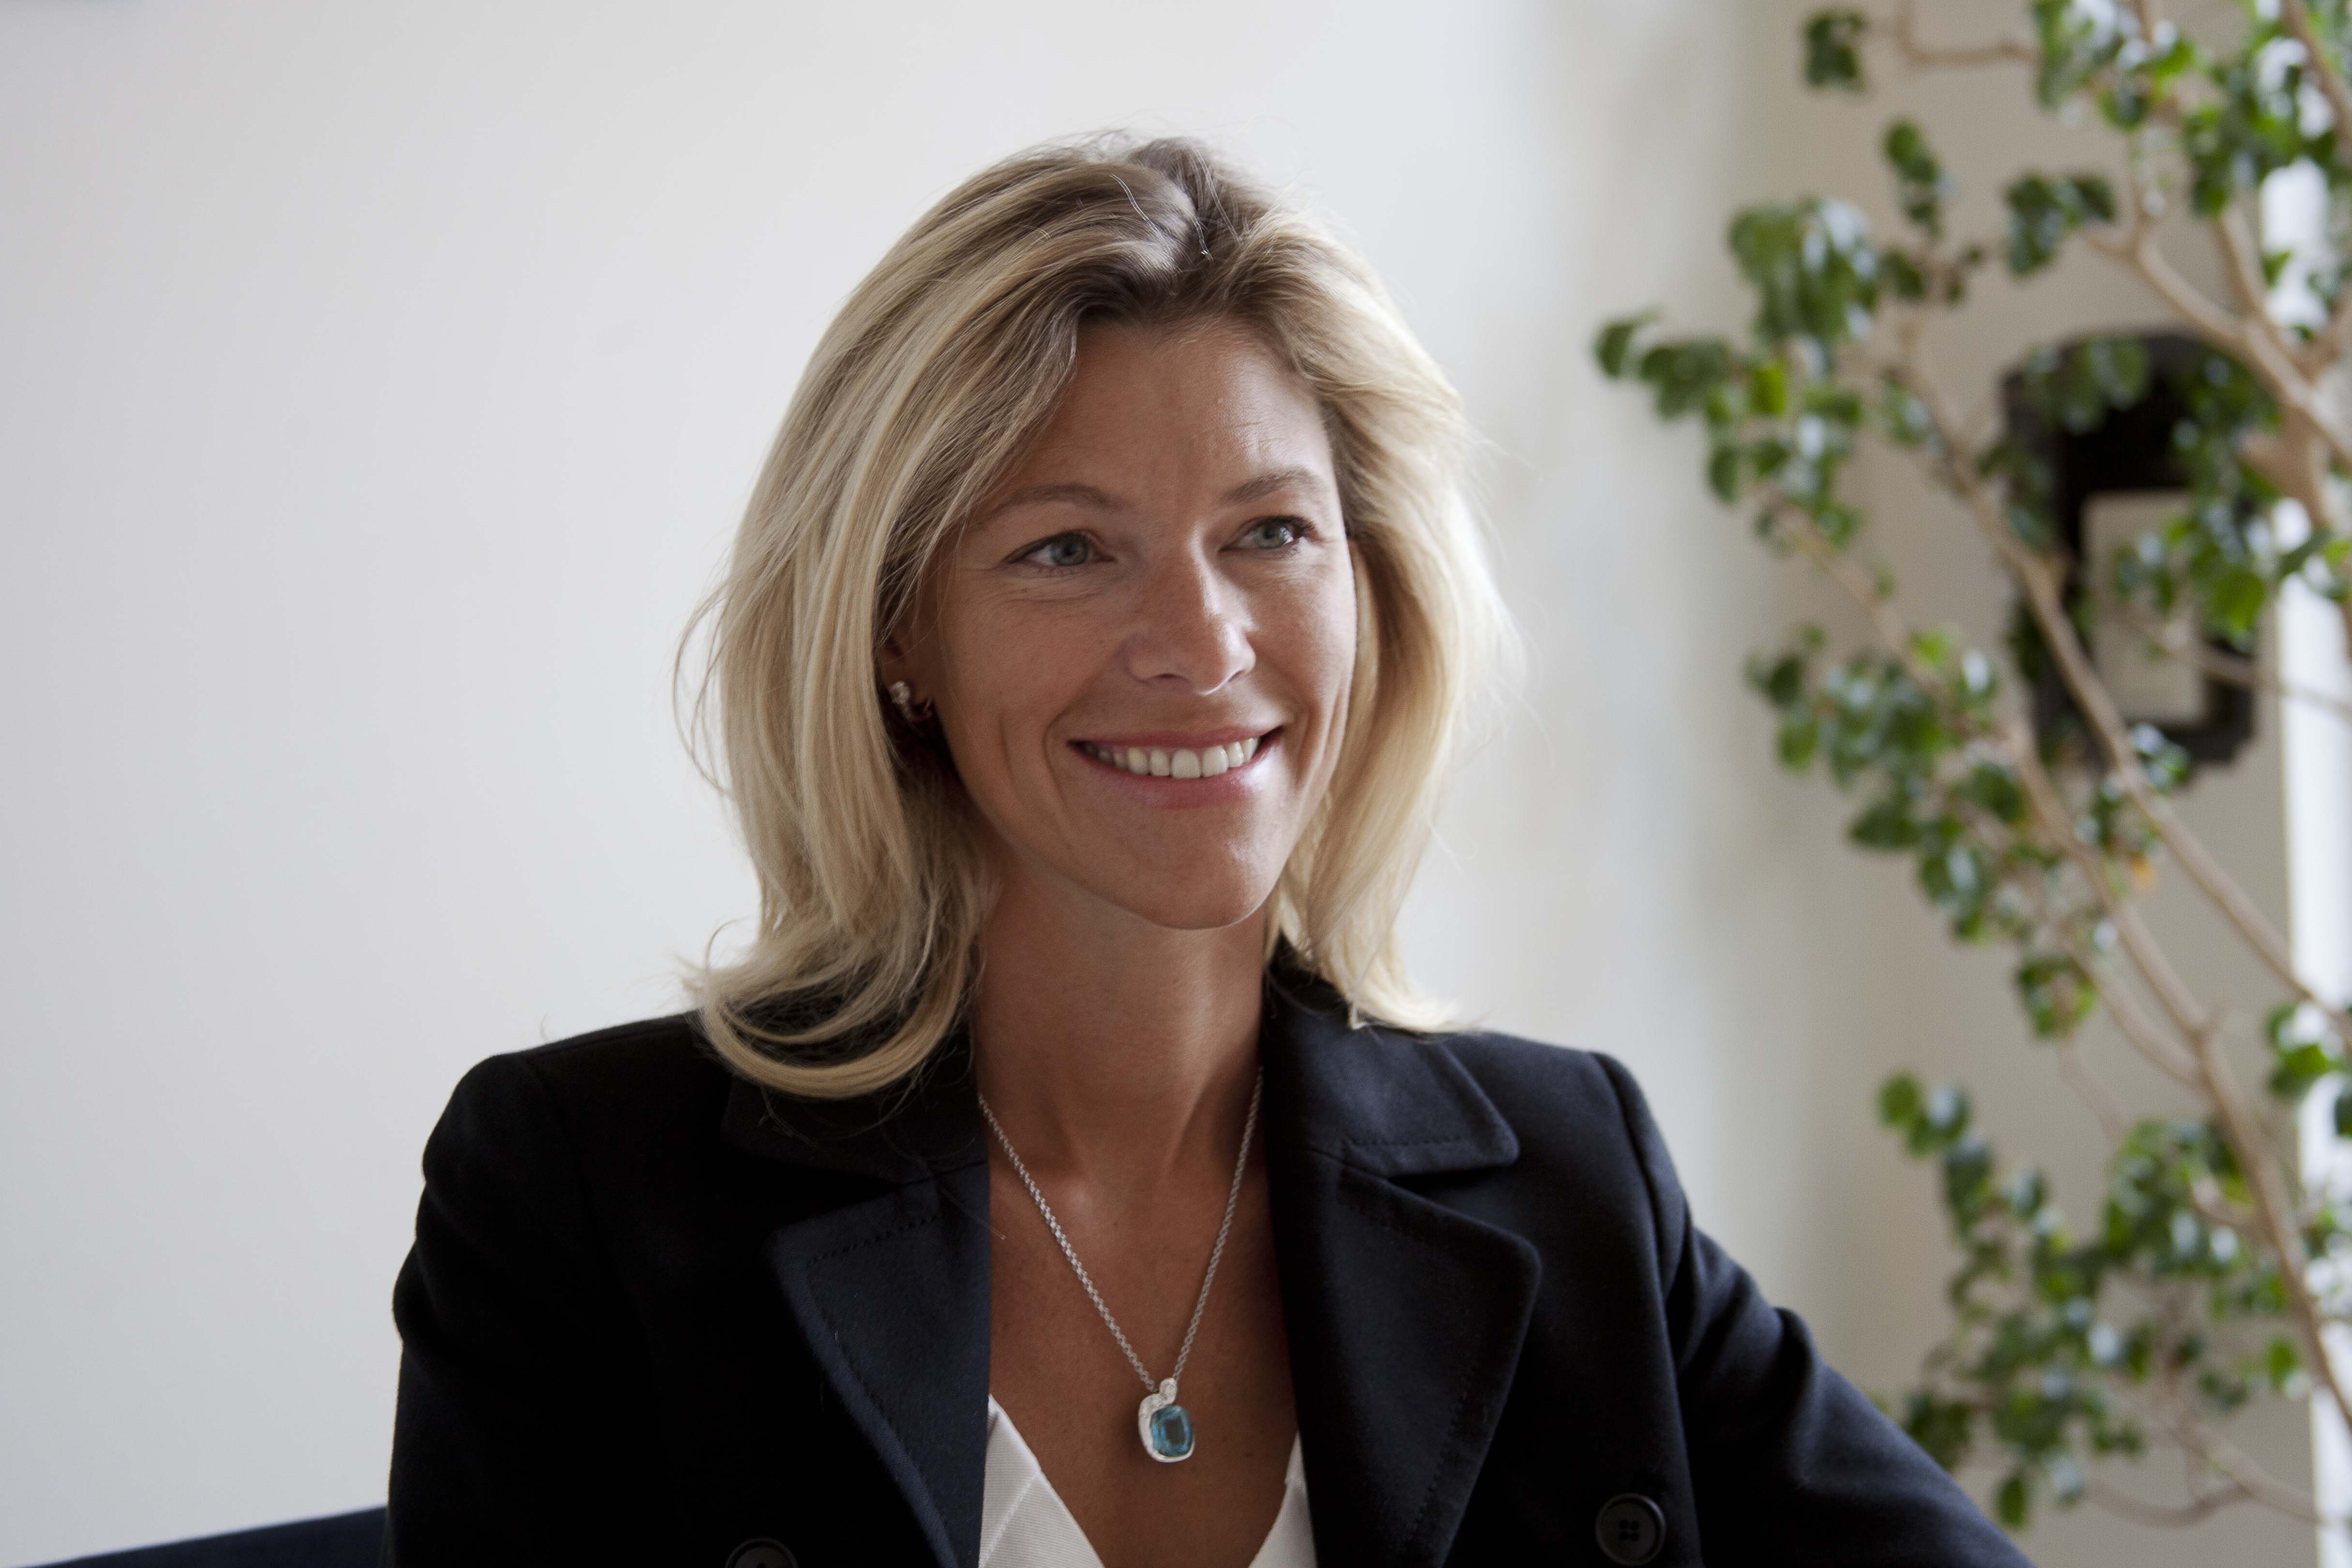 Christofle chief executive officer Nathalie Remy